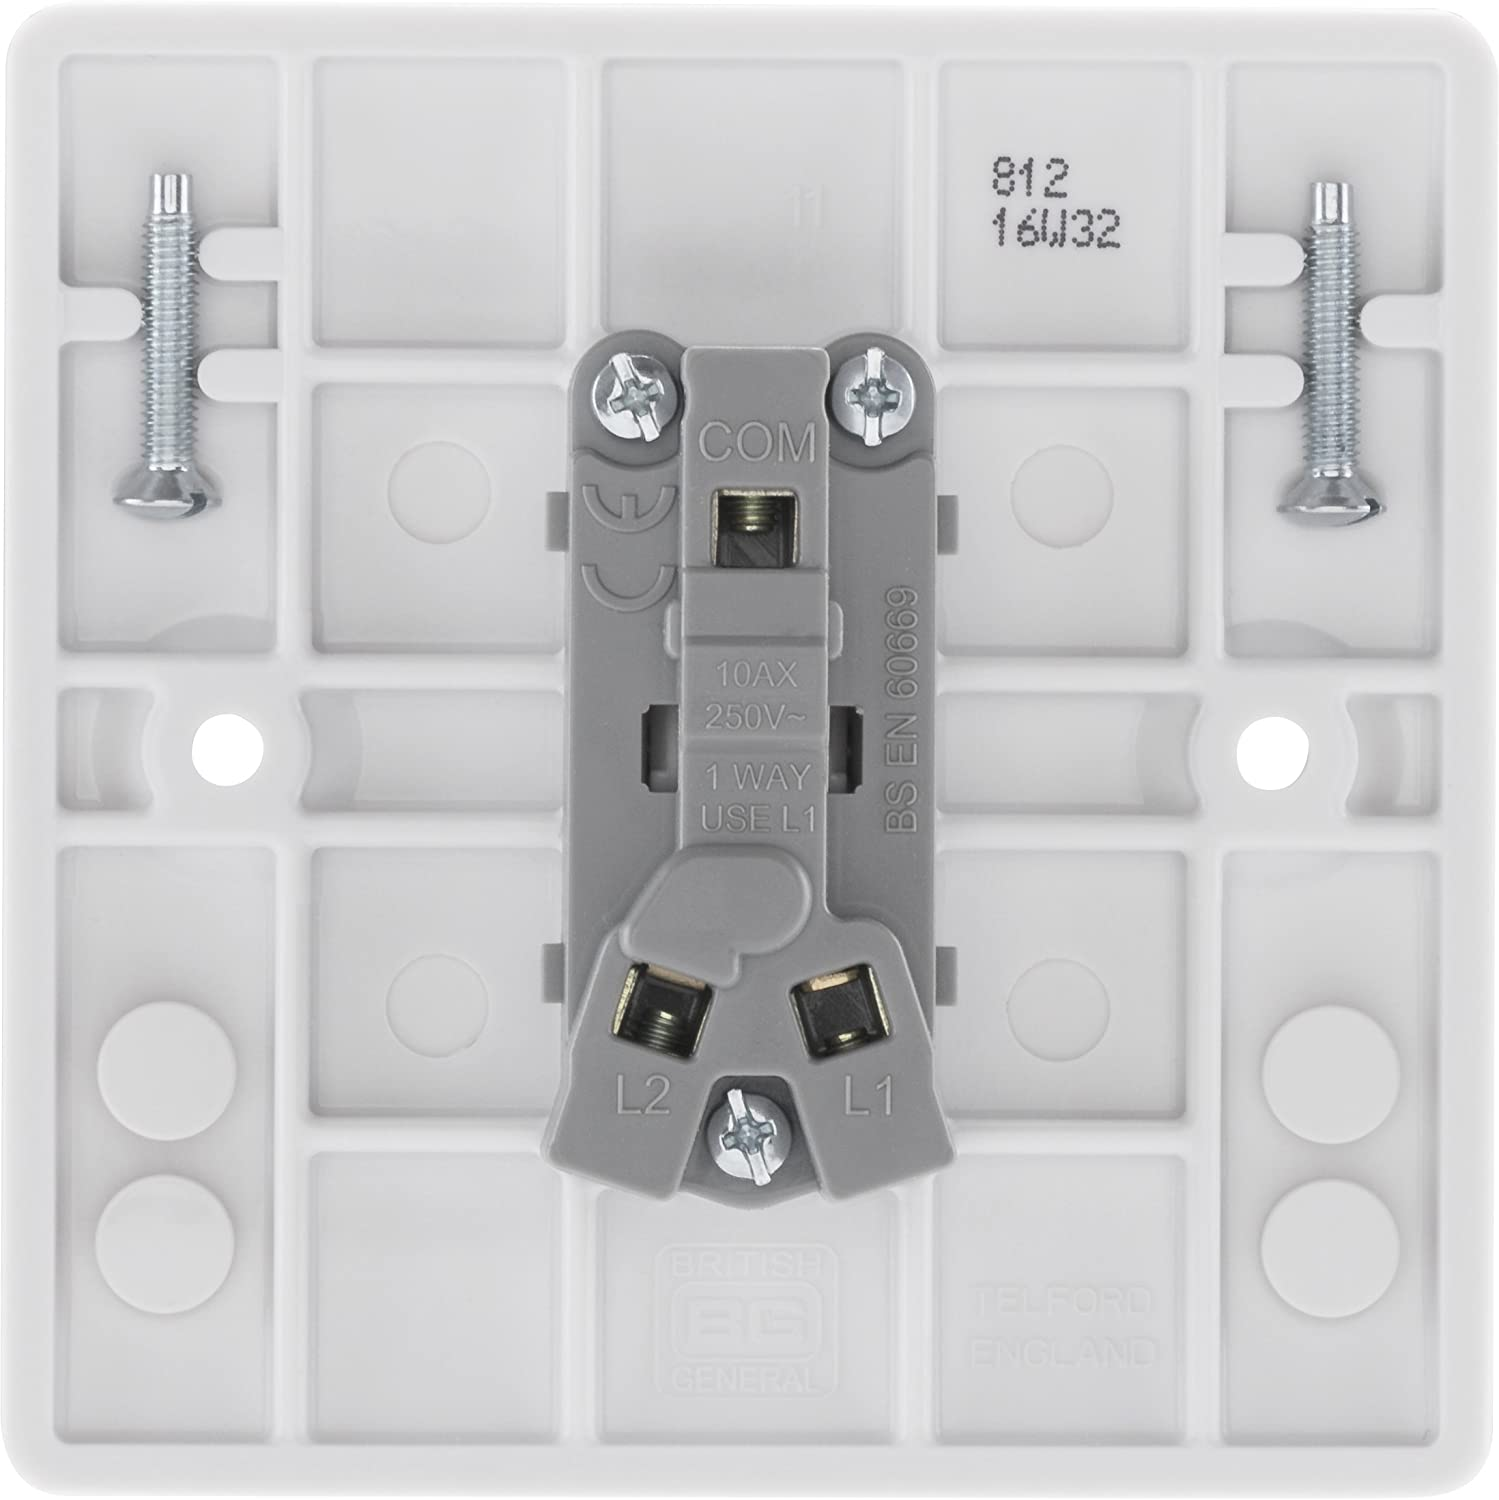 Bg Electrical 812 10ax Single 2 Way Light Switch White Amazonco Wiring Up A Double Dimmer Uk Diy Tools